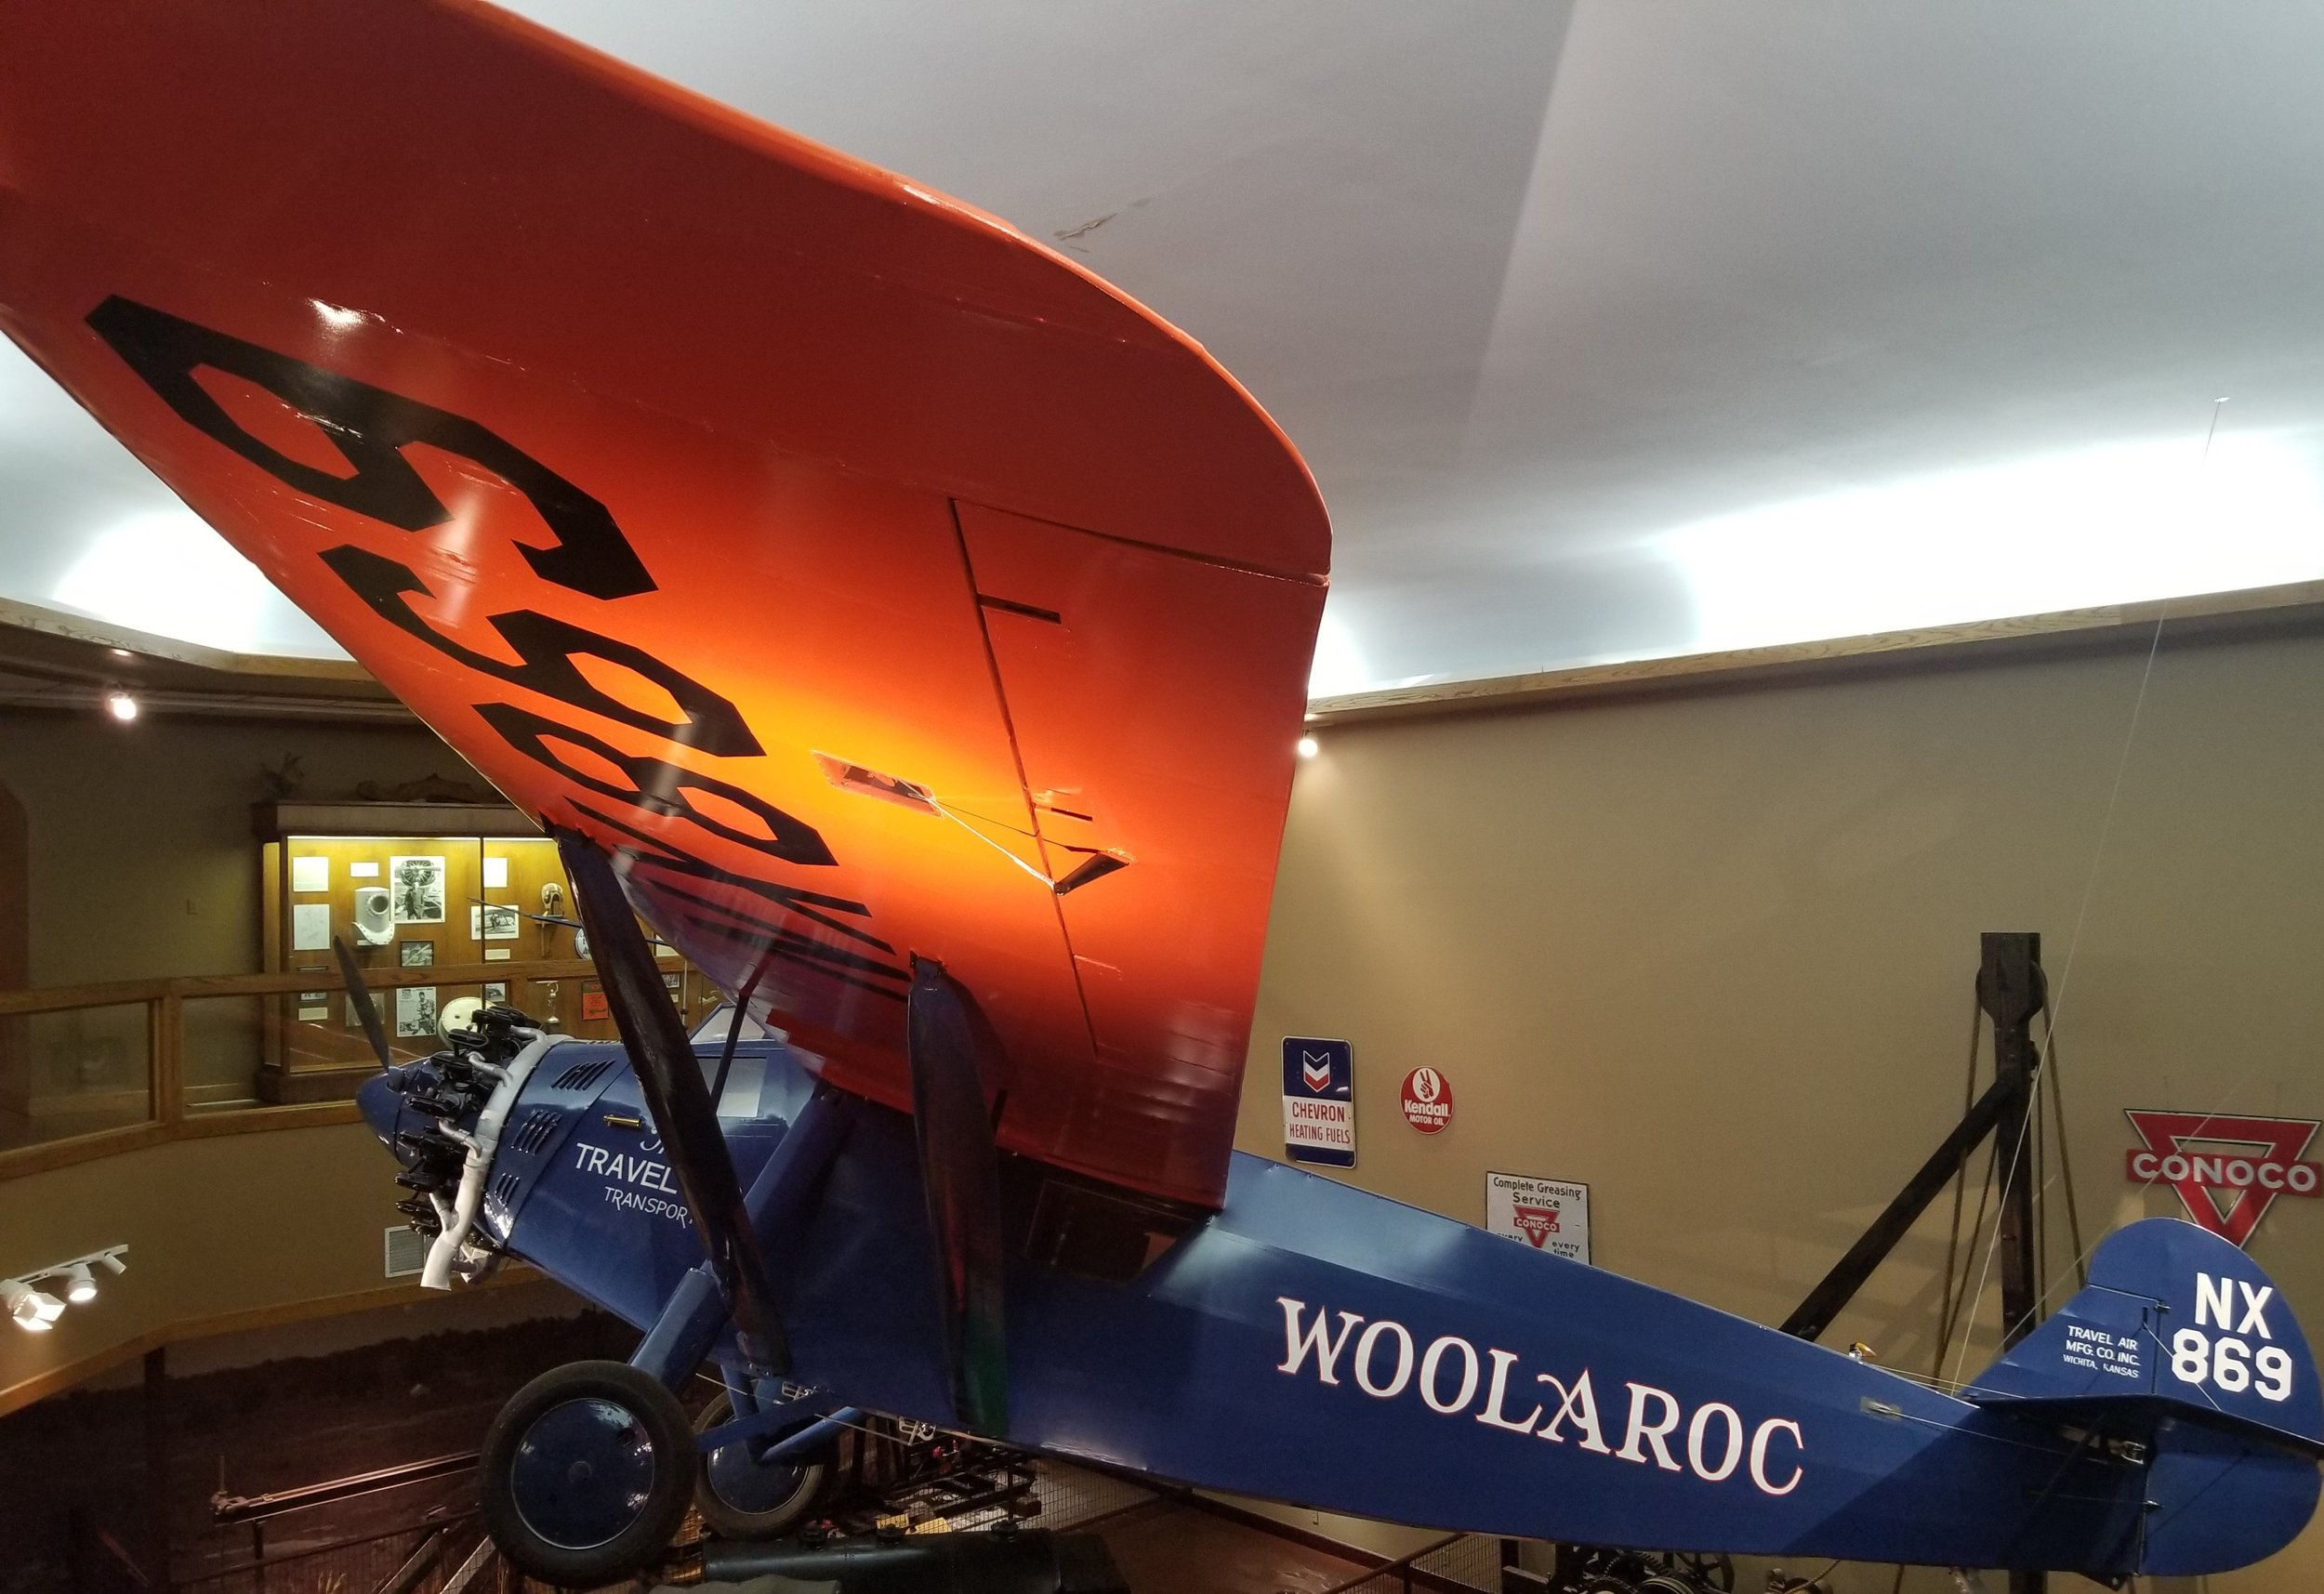 The Type 5000 was the first monoplane built by Travel Air, Inc. Less than thirty were made. This plane is number 10 and the only complete 5000 still in existence. This plane was built for Art Goebel who had entered the Dole Flight, a 2437 mile race from Oakland to Honolulu